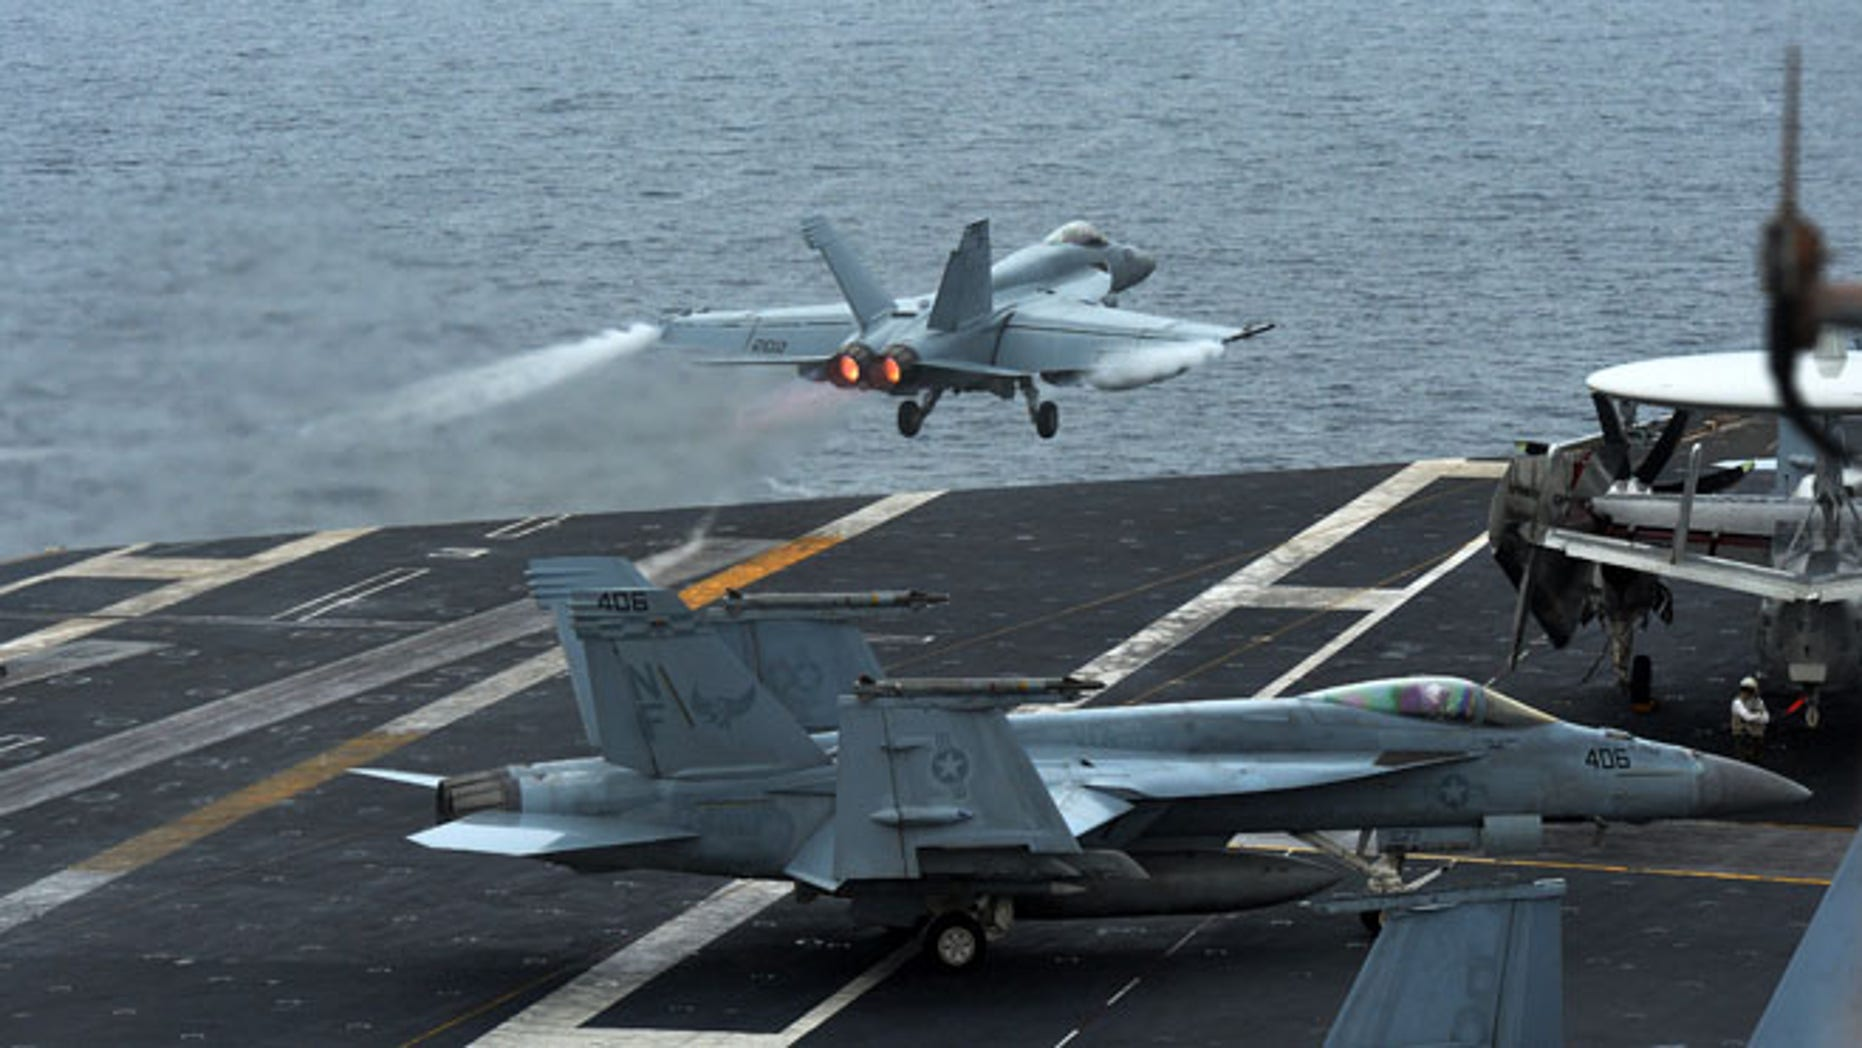 A U.S. F18 Hornet fighter attack aircraft is launched off the deck of the U.S. nuclear-powered aircraft carrier, USS George Washington during a military exercise off South Korea's West Sea, Wednesday, July 16, 2014.